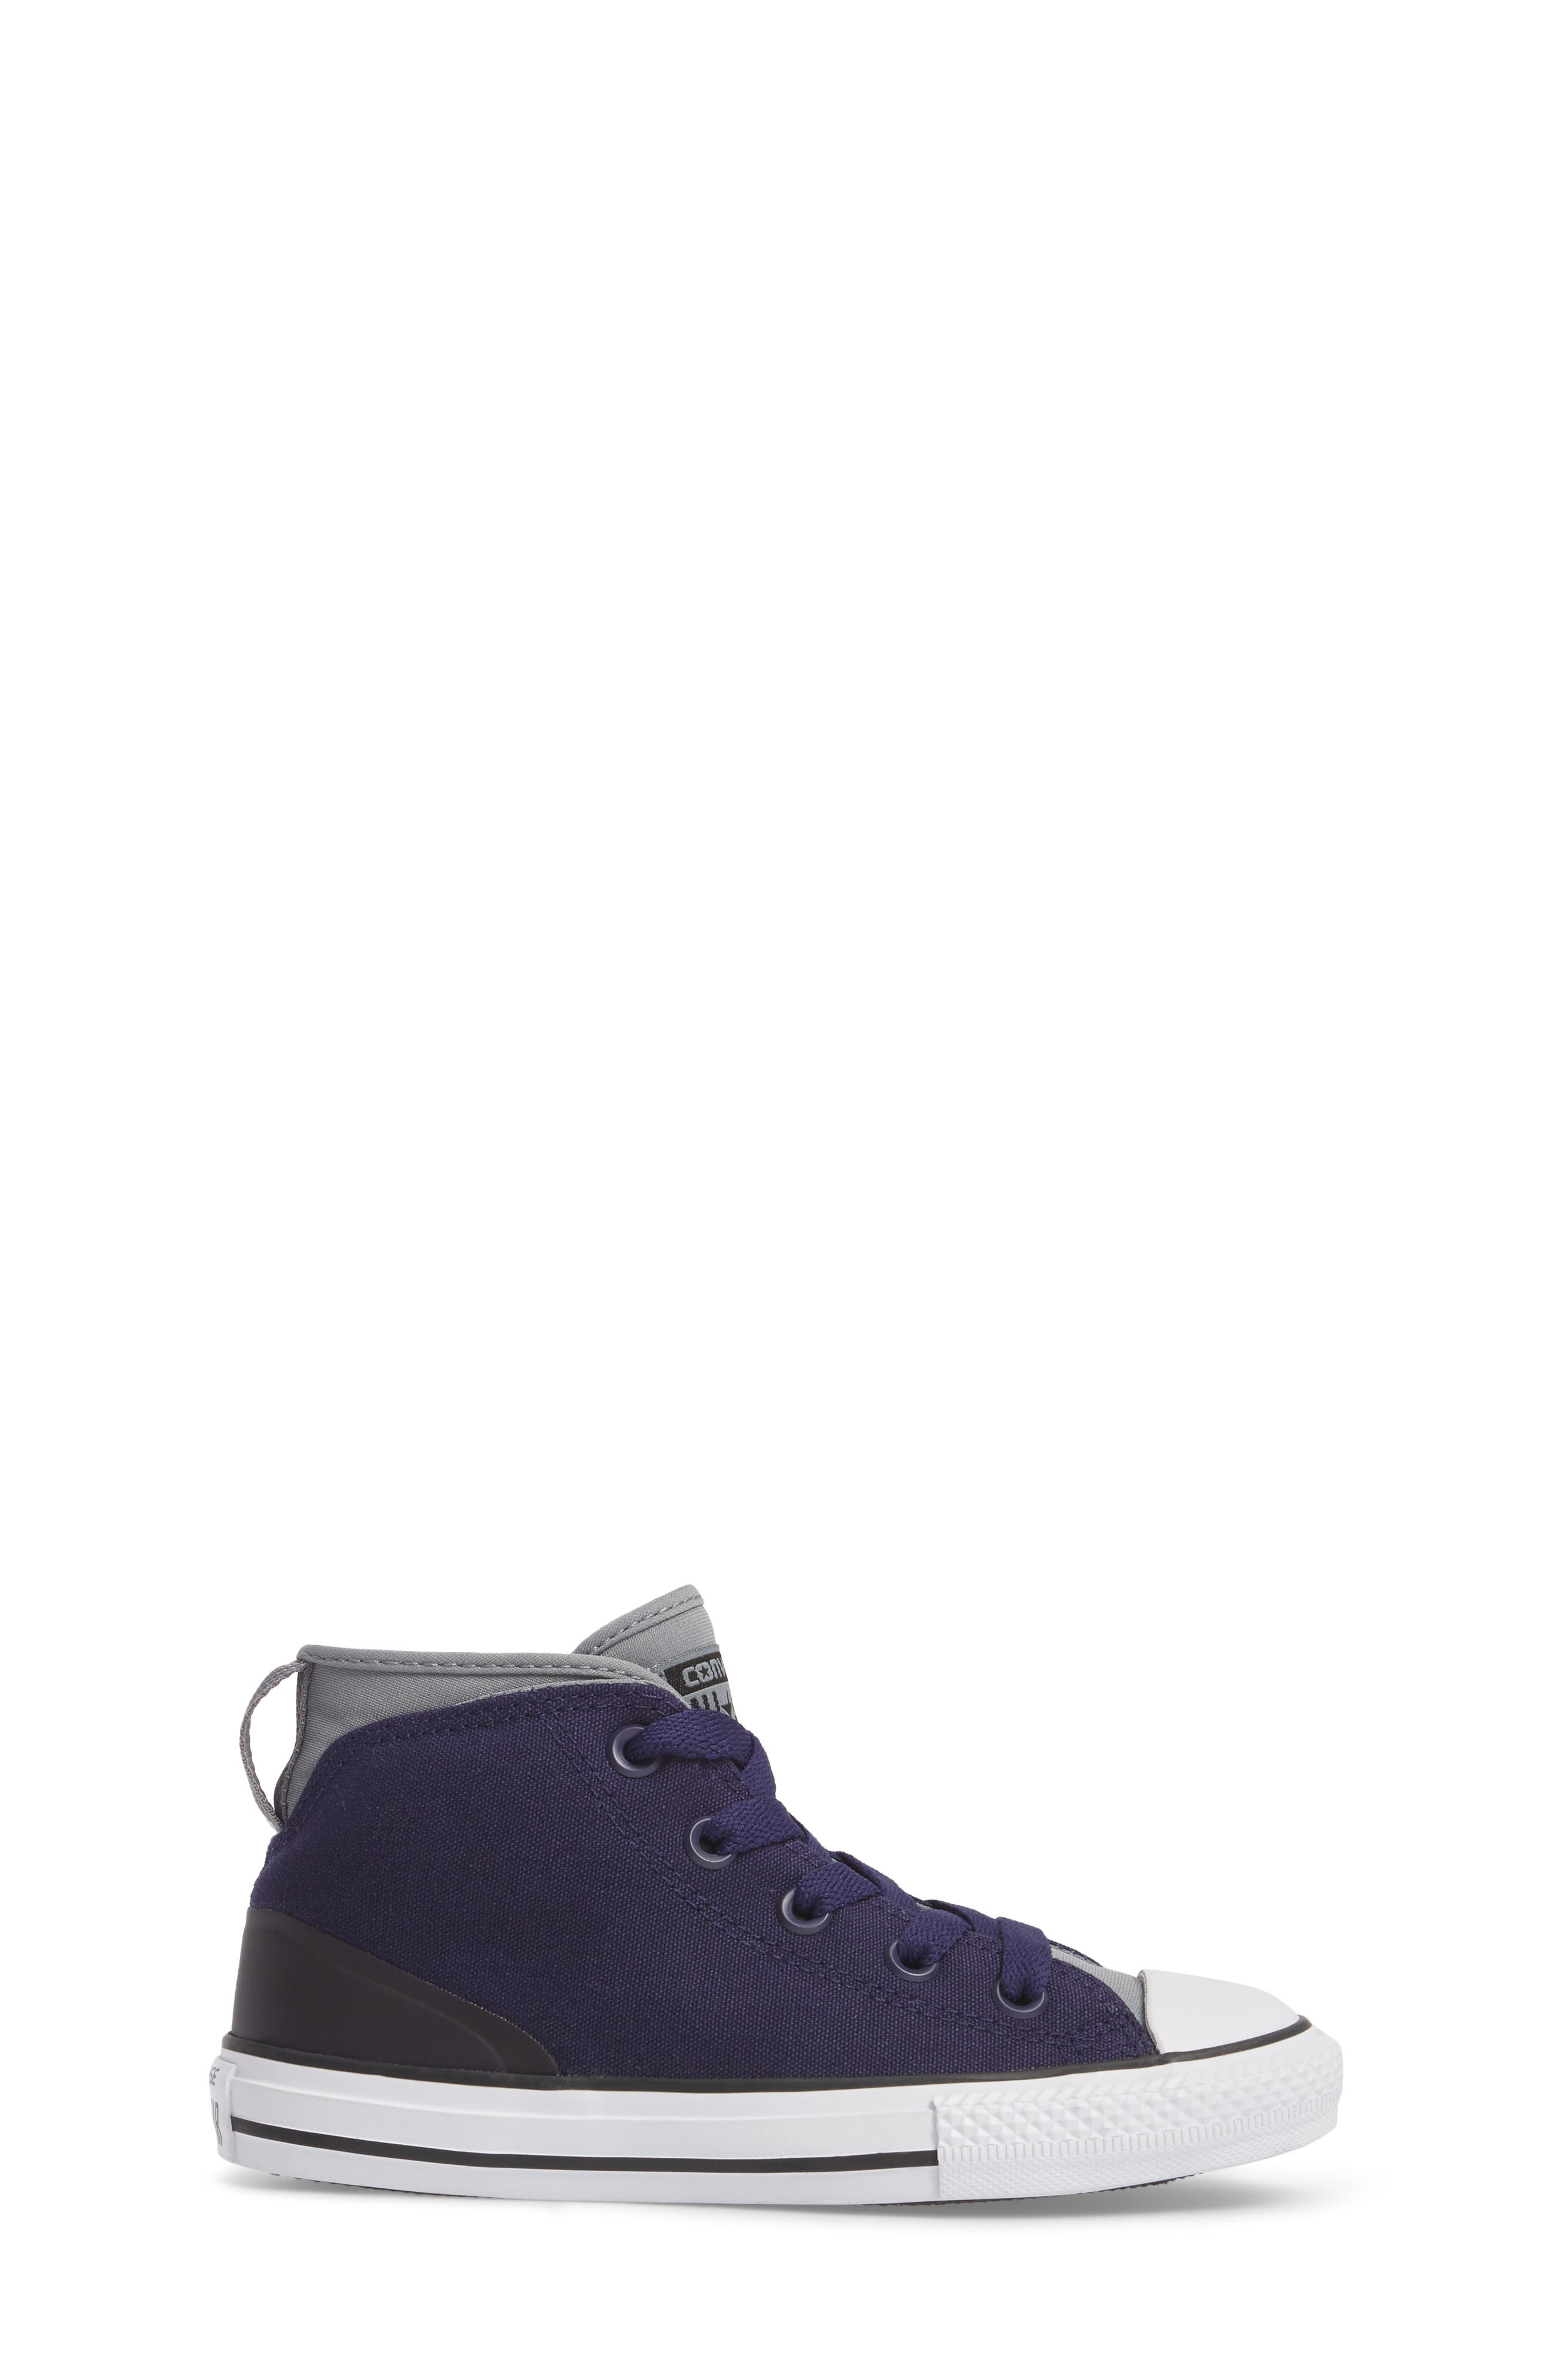 Chuck Taylor<sup>®</sup> All Star<sup>®</sup> Syde Street High Top Sneaker,                             Alternate thumbnail 5, color,